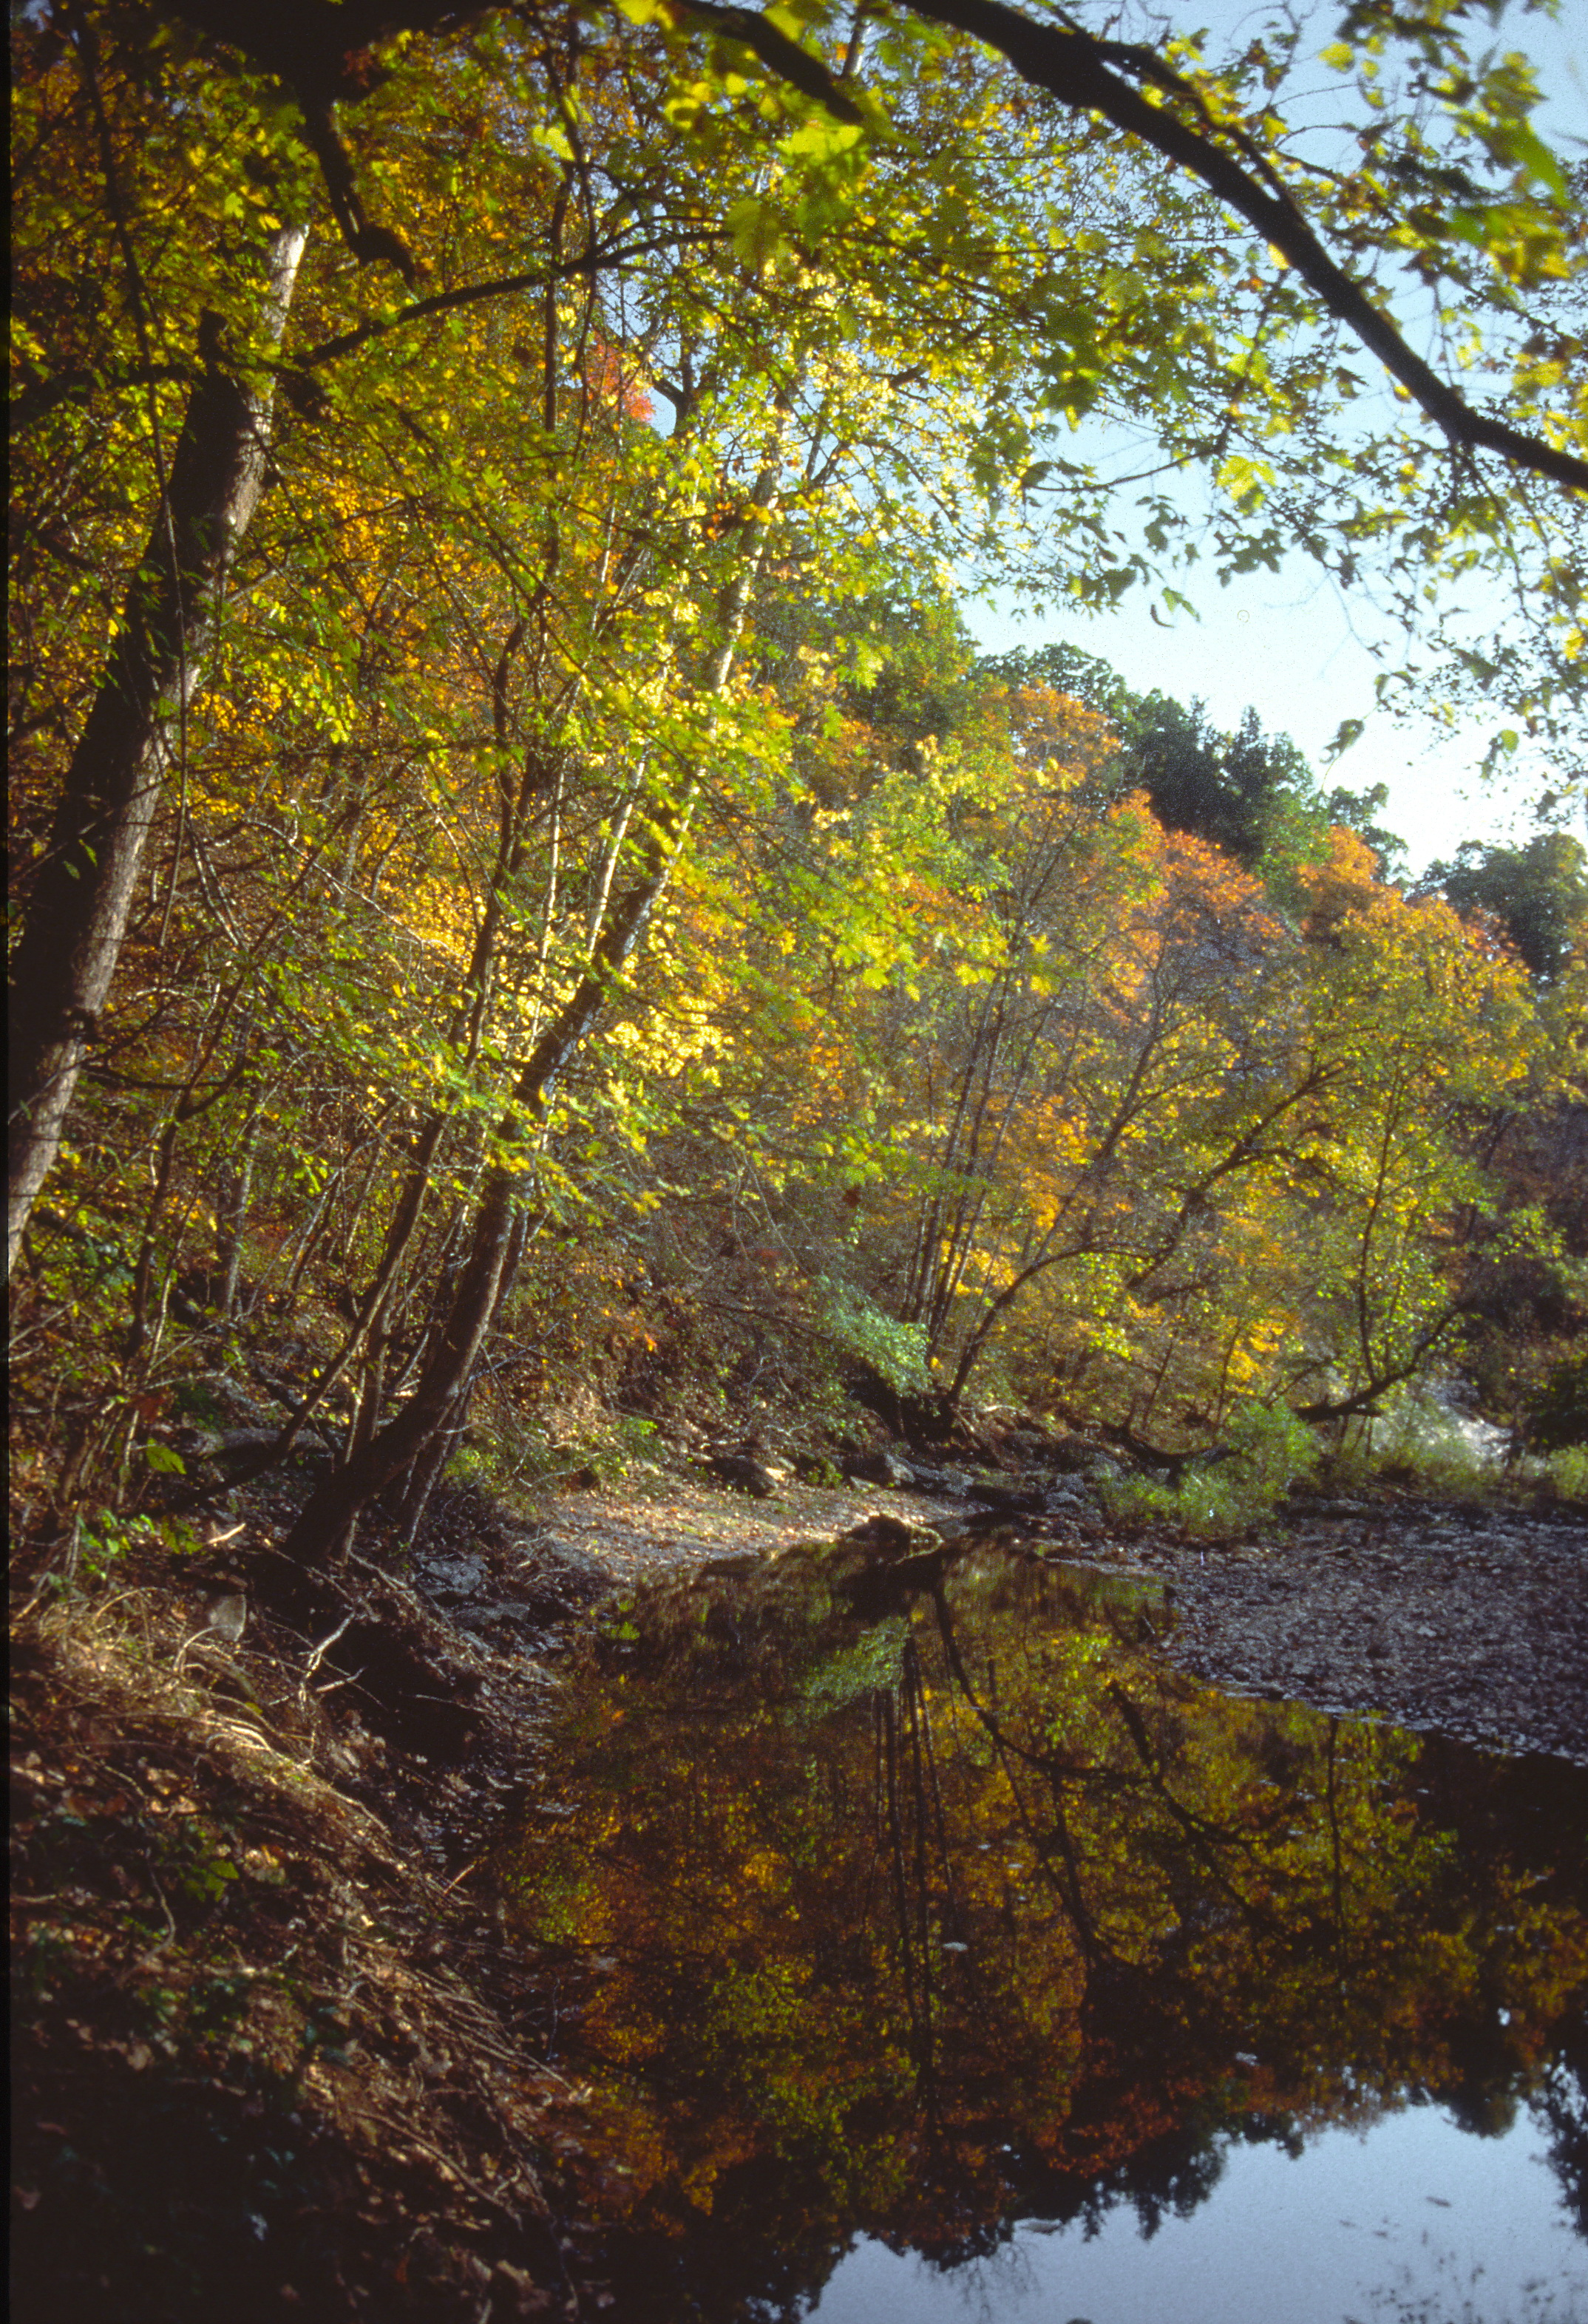 fall color trees line the stream bank